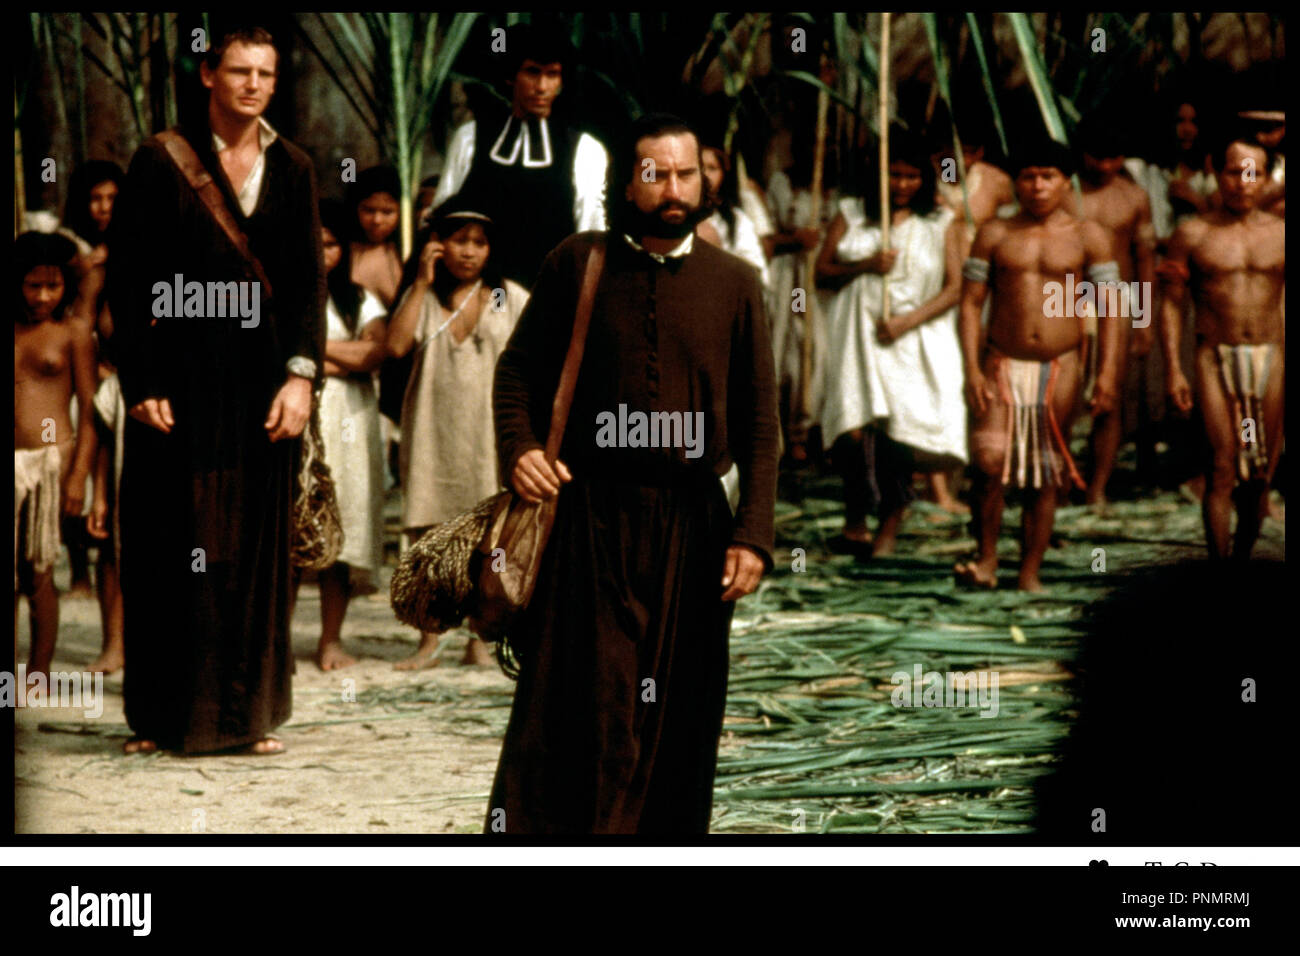 Prod DB © Goldcrest Films Ltd / Kingsmore Prod. Ltd / DR MISSION (THE MISSION) de Roland Joffe 1986 GB avec Liam Neeson et Robert De Niro Amerique du Sud, indiens, pelerinage, jesuite, - Stock Image